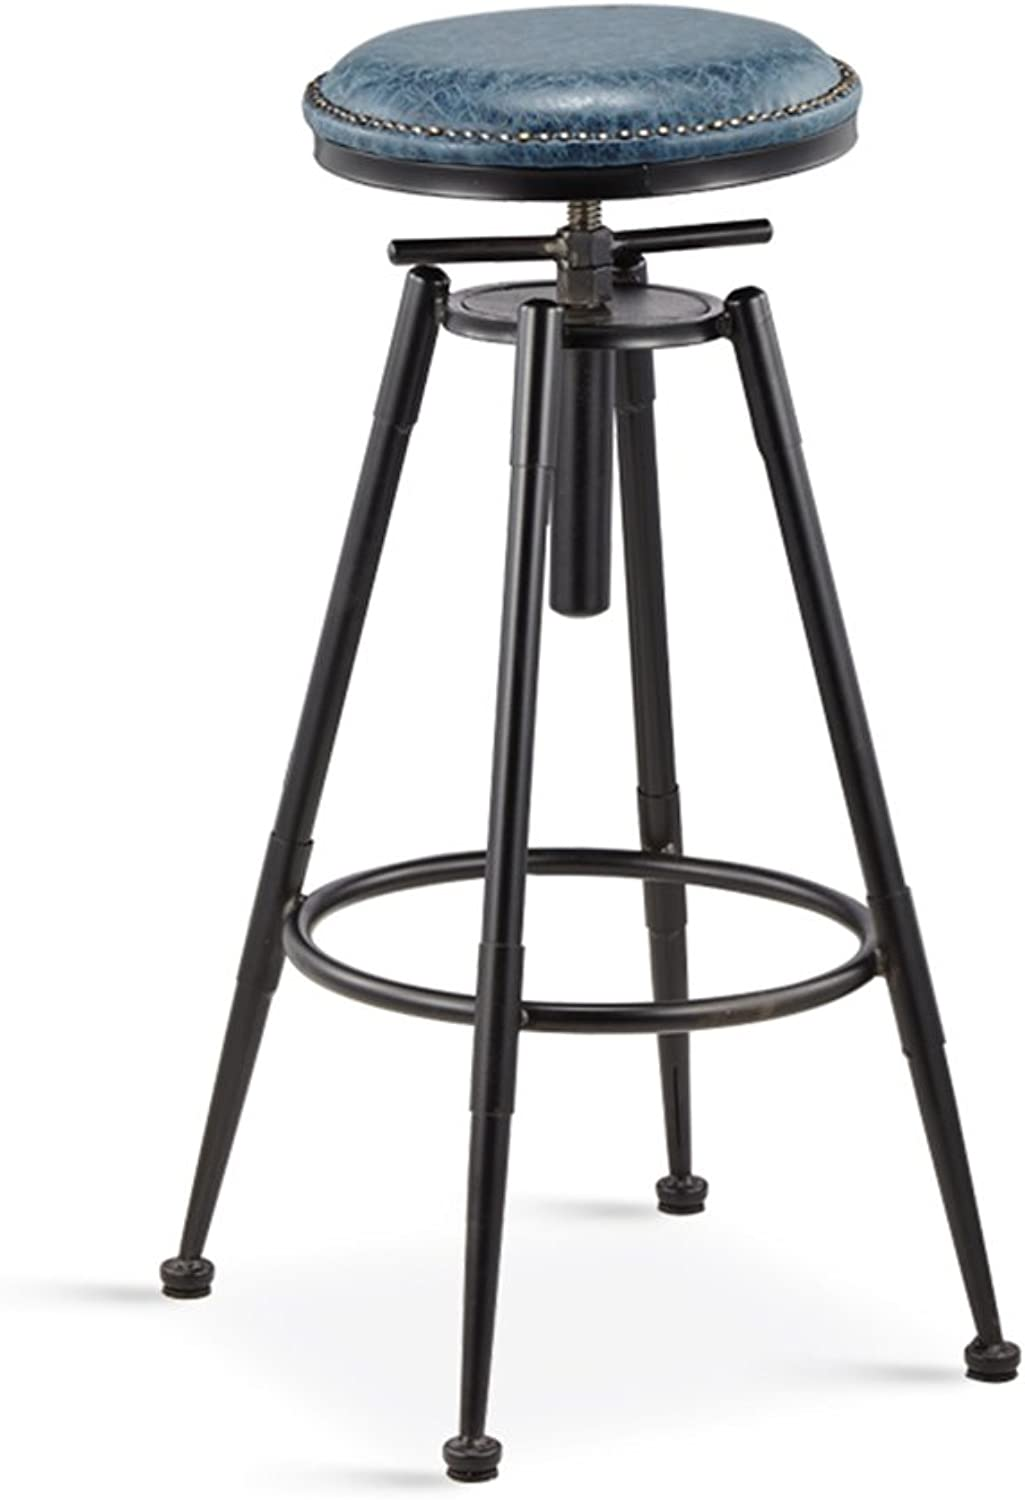 Retro bar Stool - American bar Stool Coffee Chair high Stool Makeup Stool Beauty Stool Home Back Chair Retro Hair Work Stool (Four colors Optional) -Home Furniture (color   bluee, Size   A)